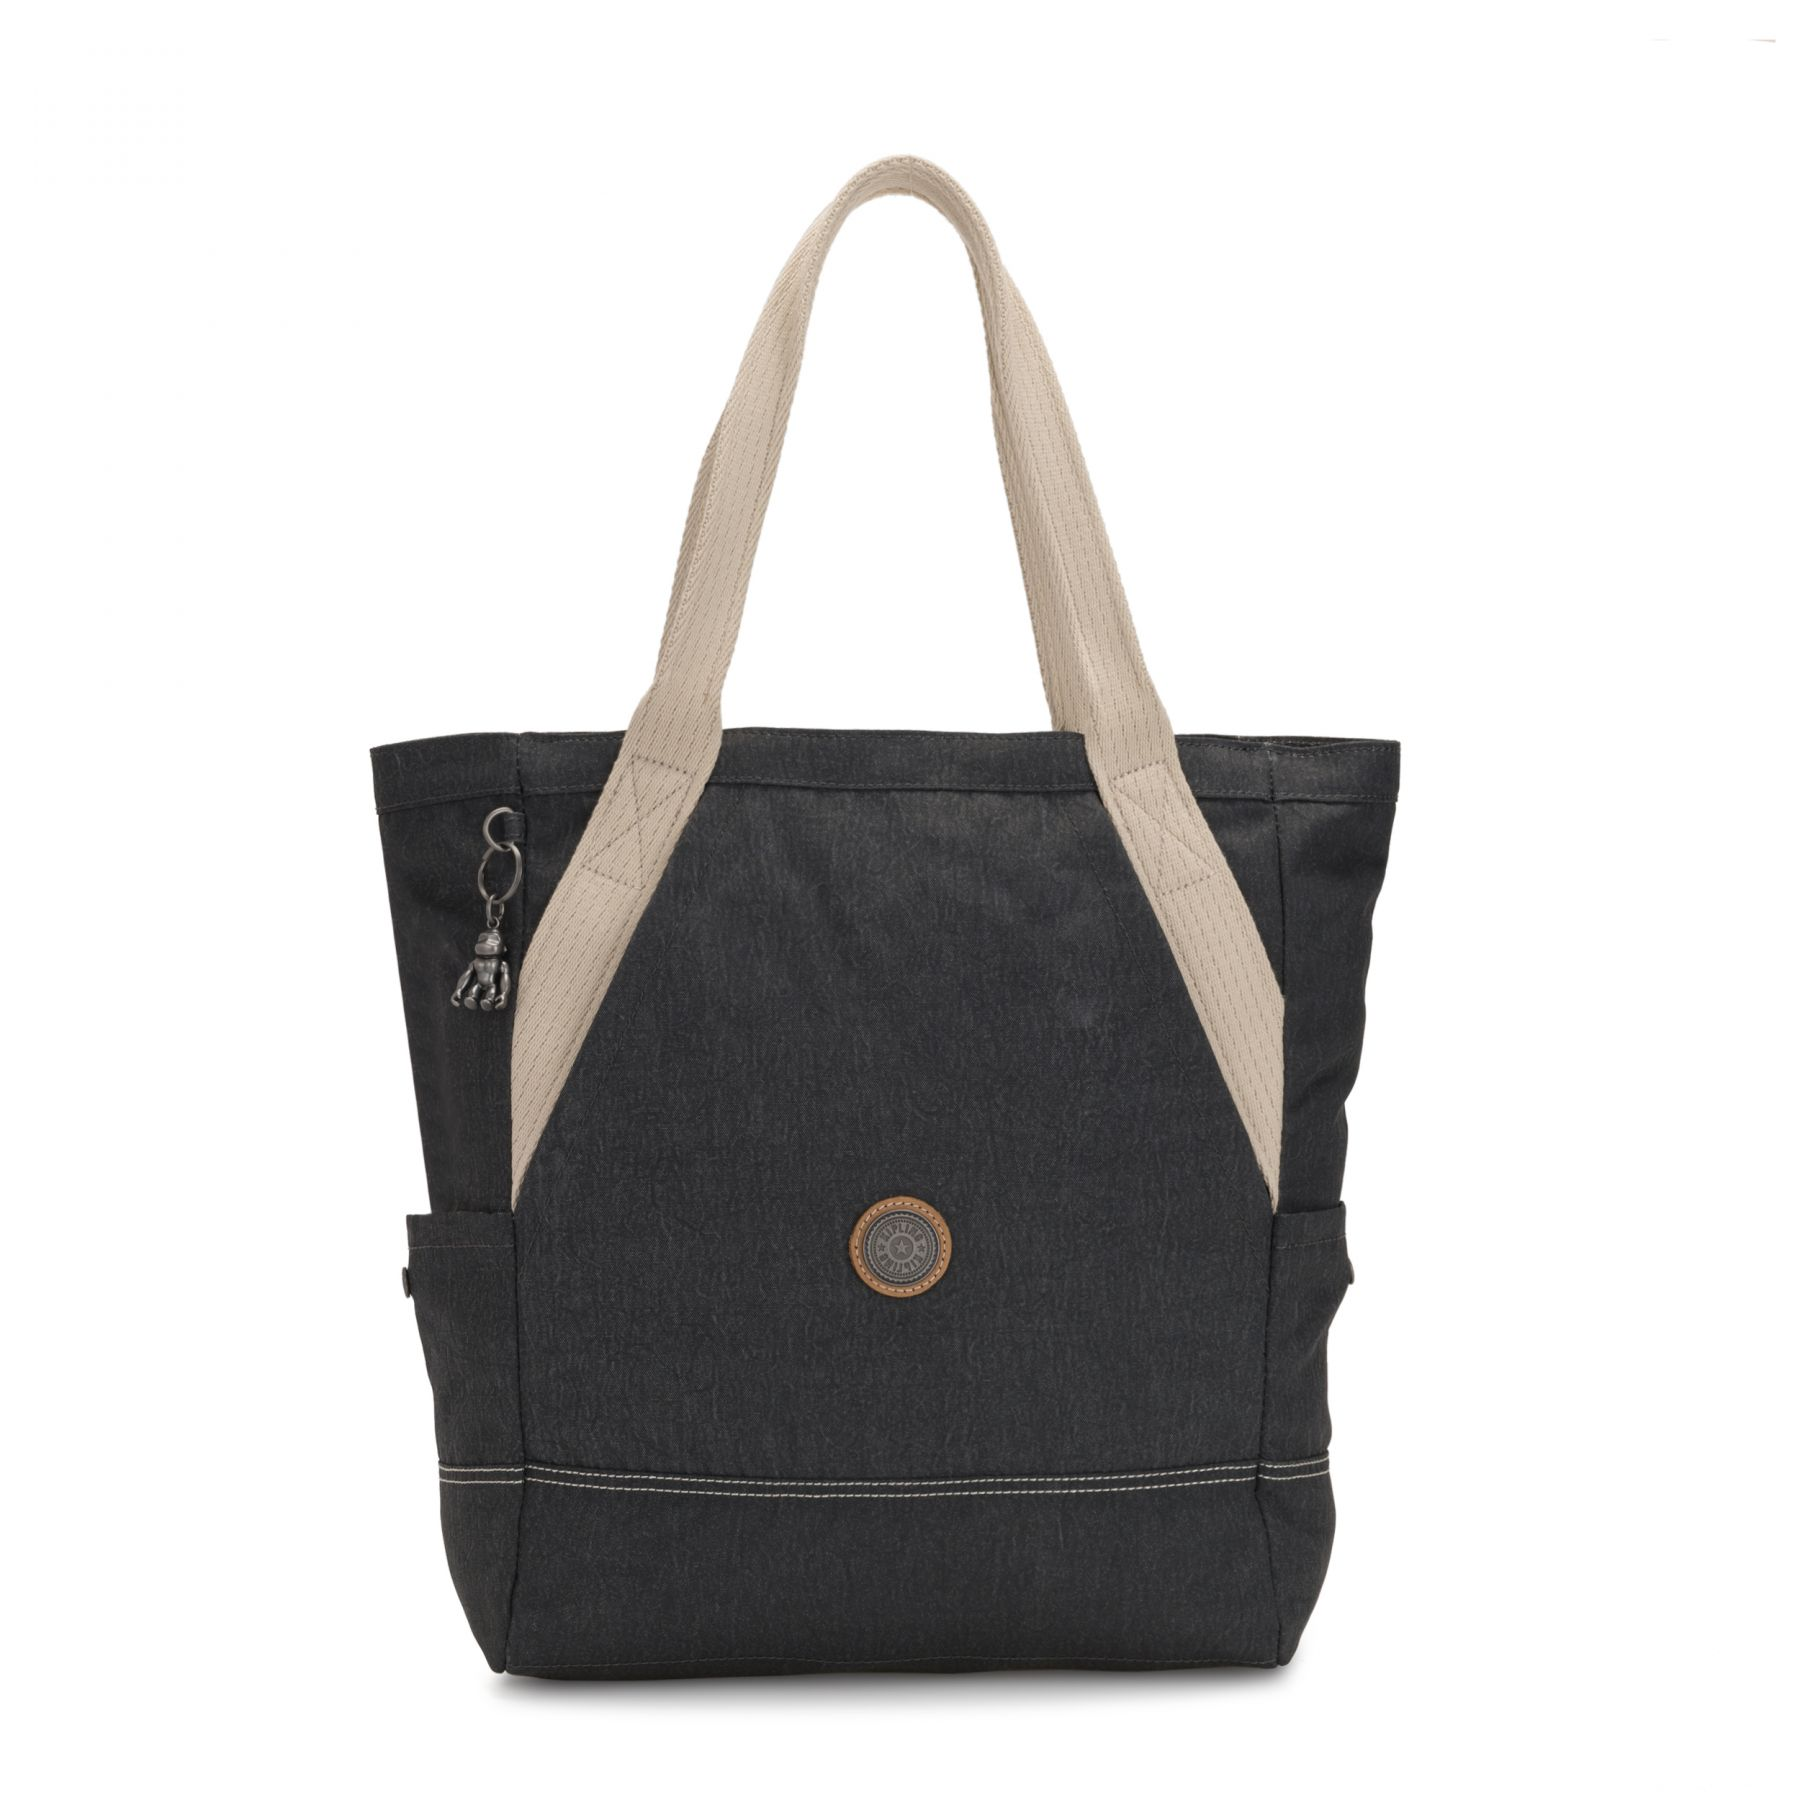 ALMATO Totes by Kipling - Front view